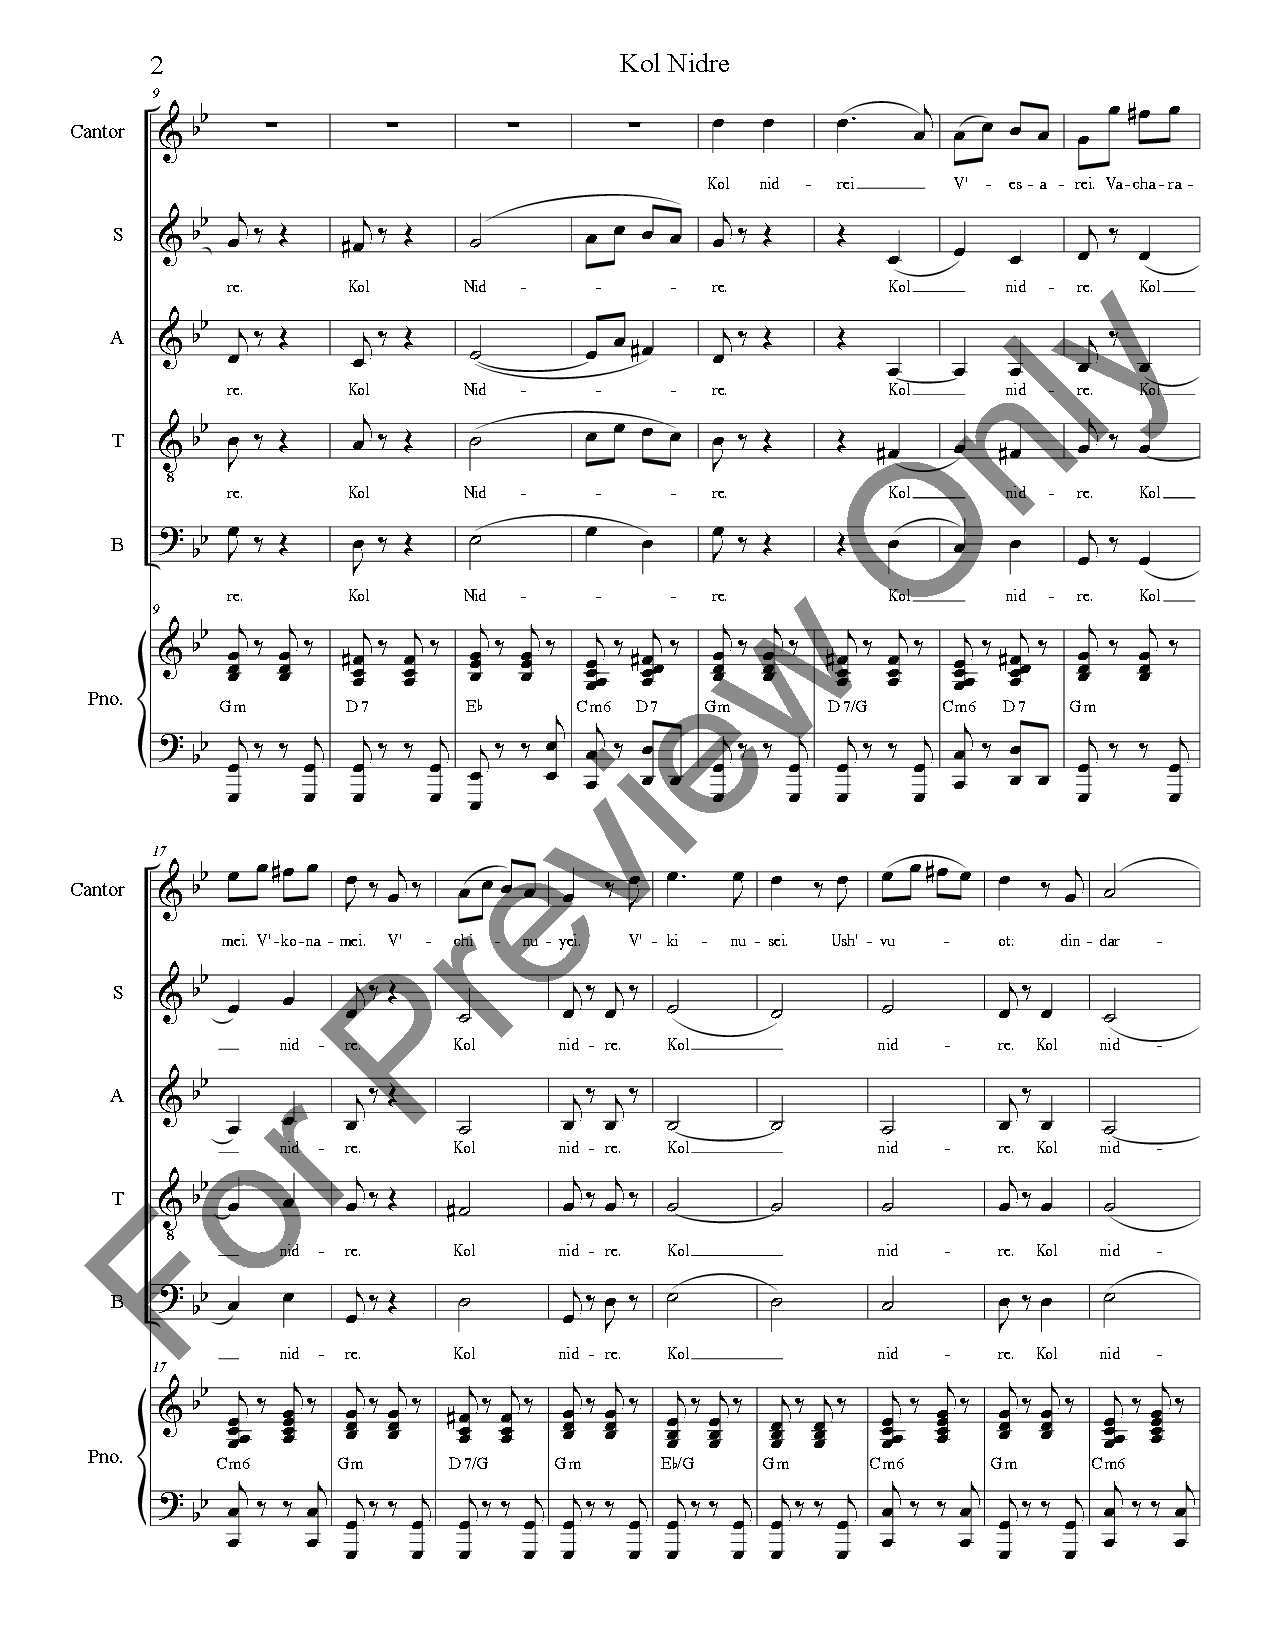 kol nidre sheet music